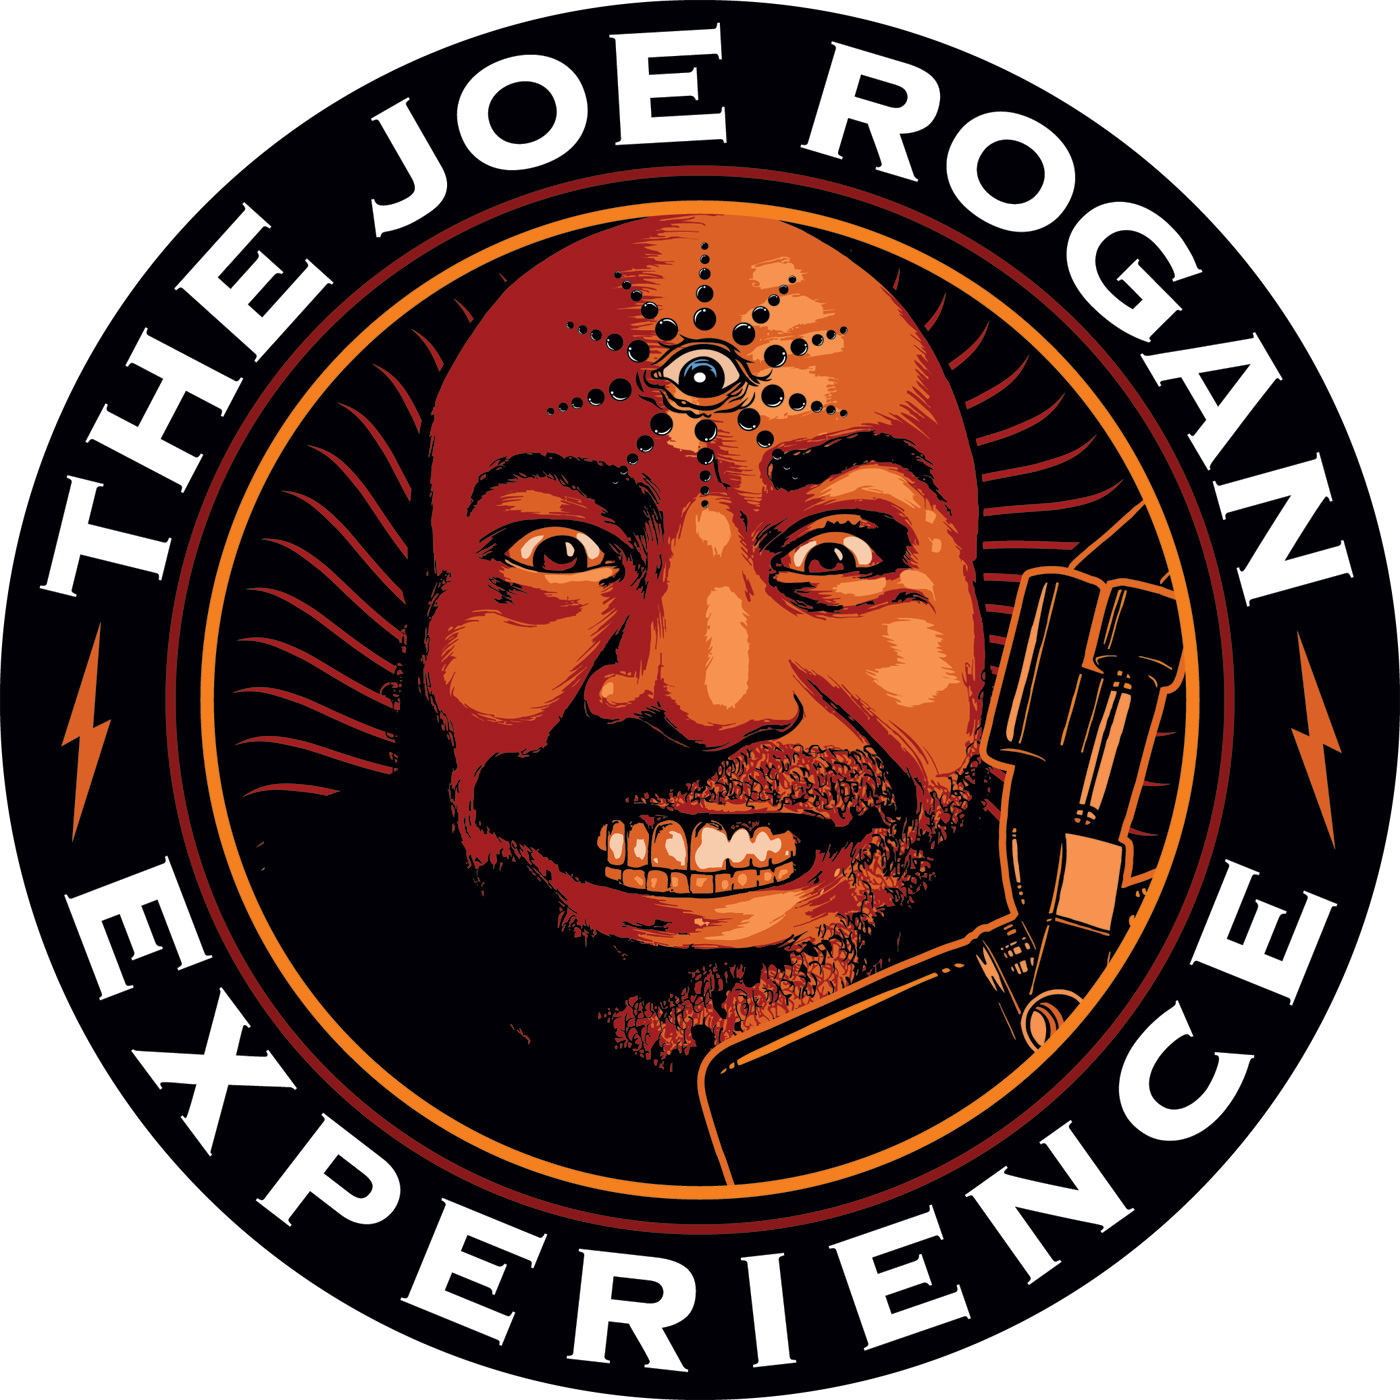 The Joe Rogan Experience PODCAST #51 - Joey Diaz, Brian Redban